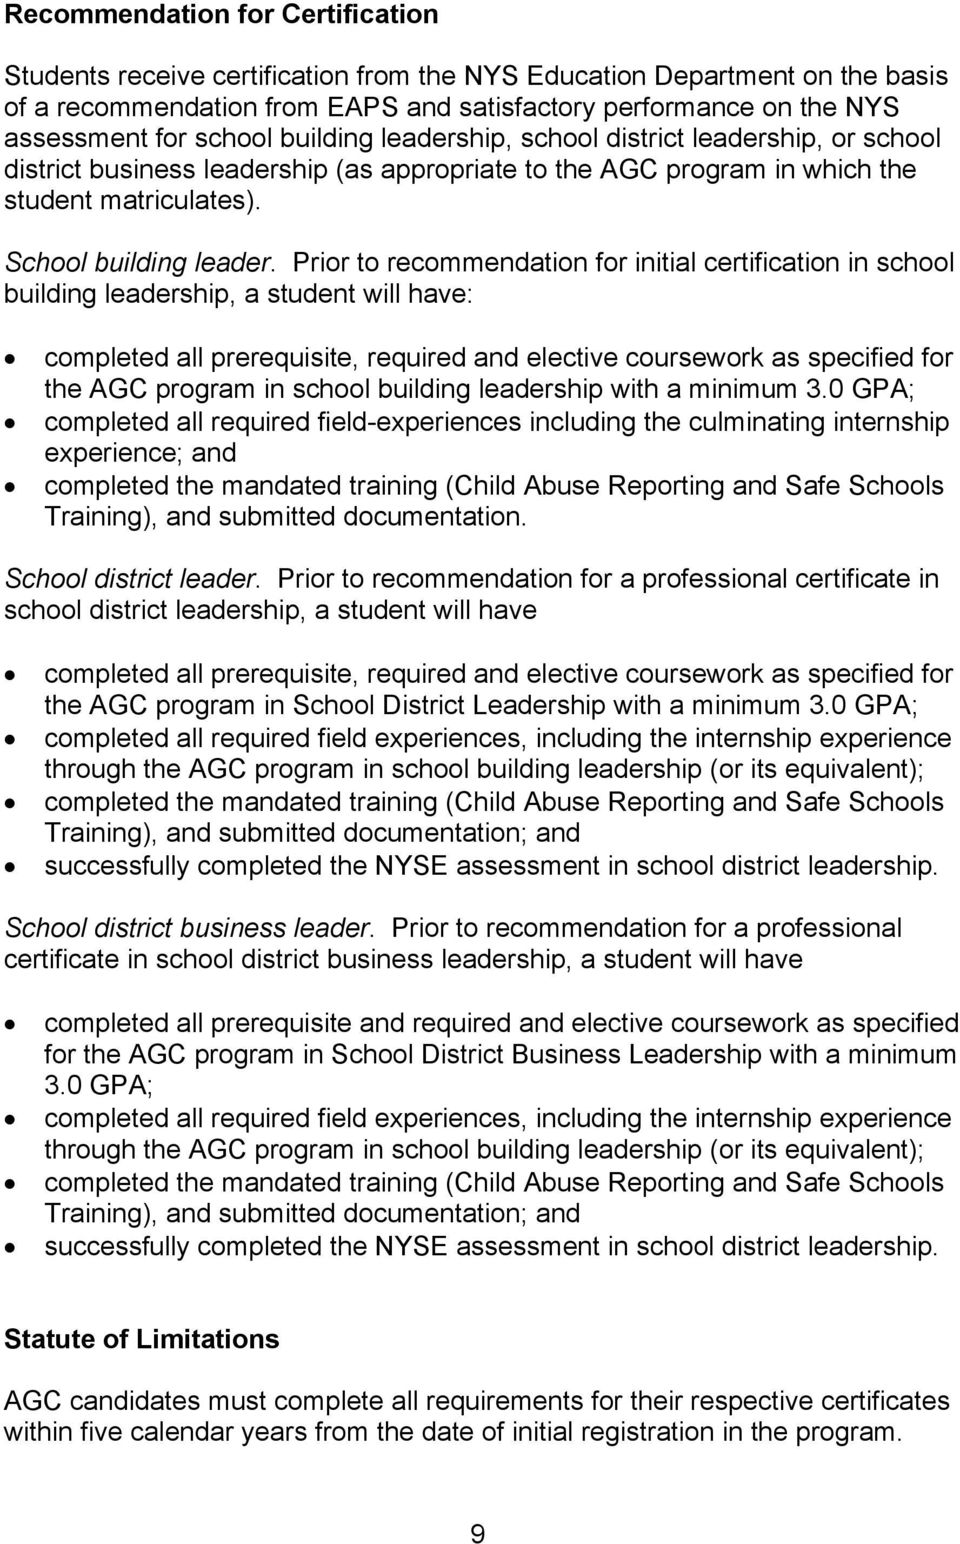 Prior to recommendation for initial certification in school building leadership, a student will have: completed all prerequisite, required and elective coursework as specified for the AGC program in